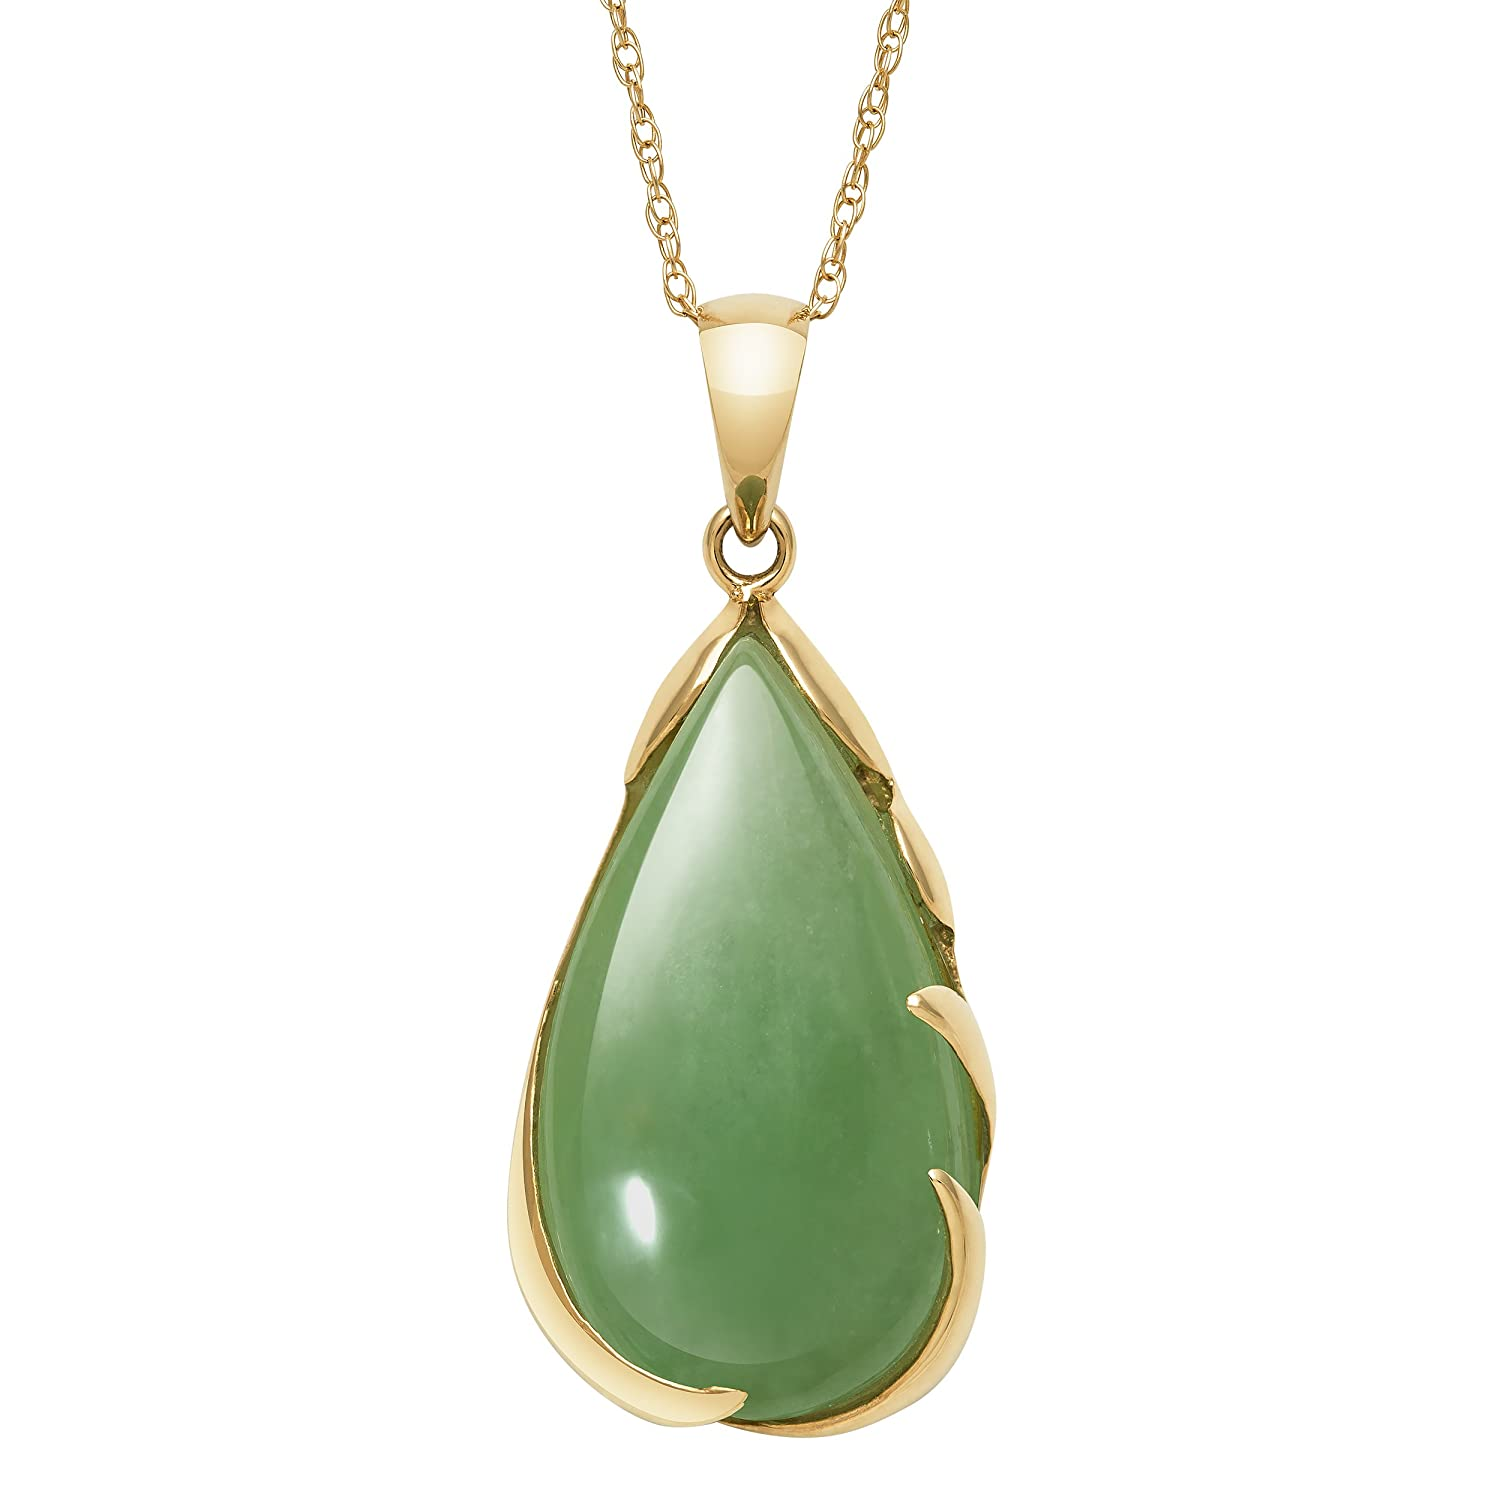 gifts aqua min her srgpaj gold rose jade london necklace shop maree for